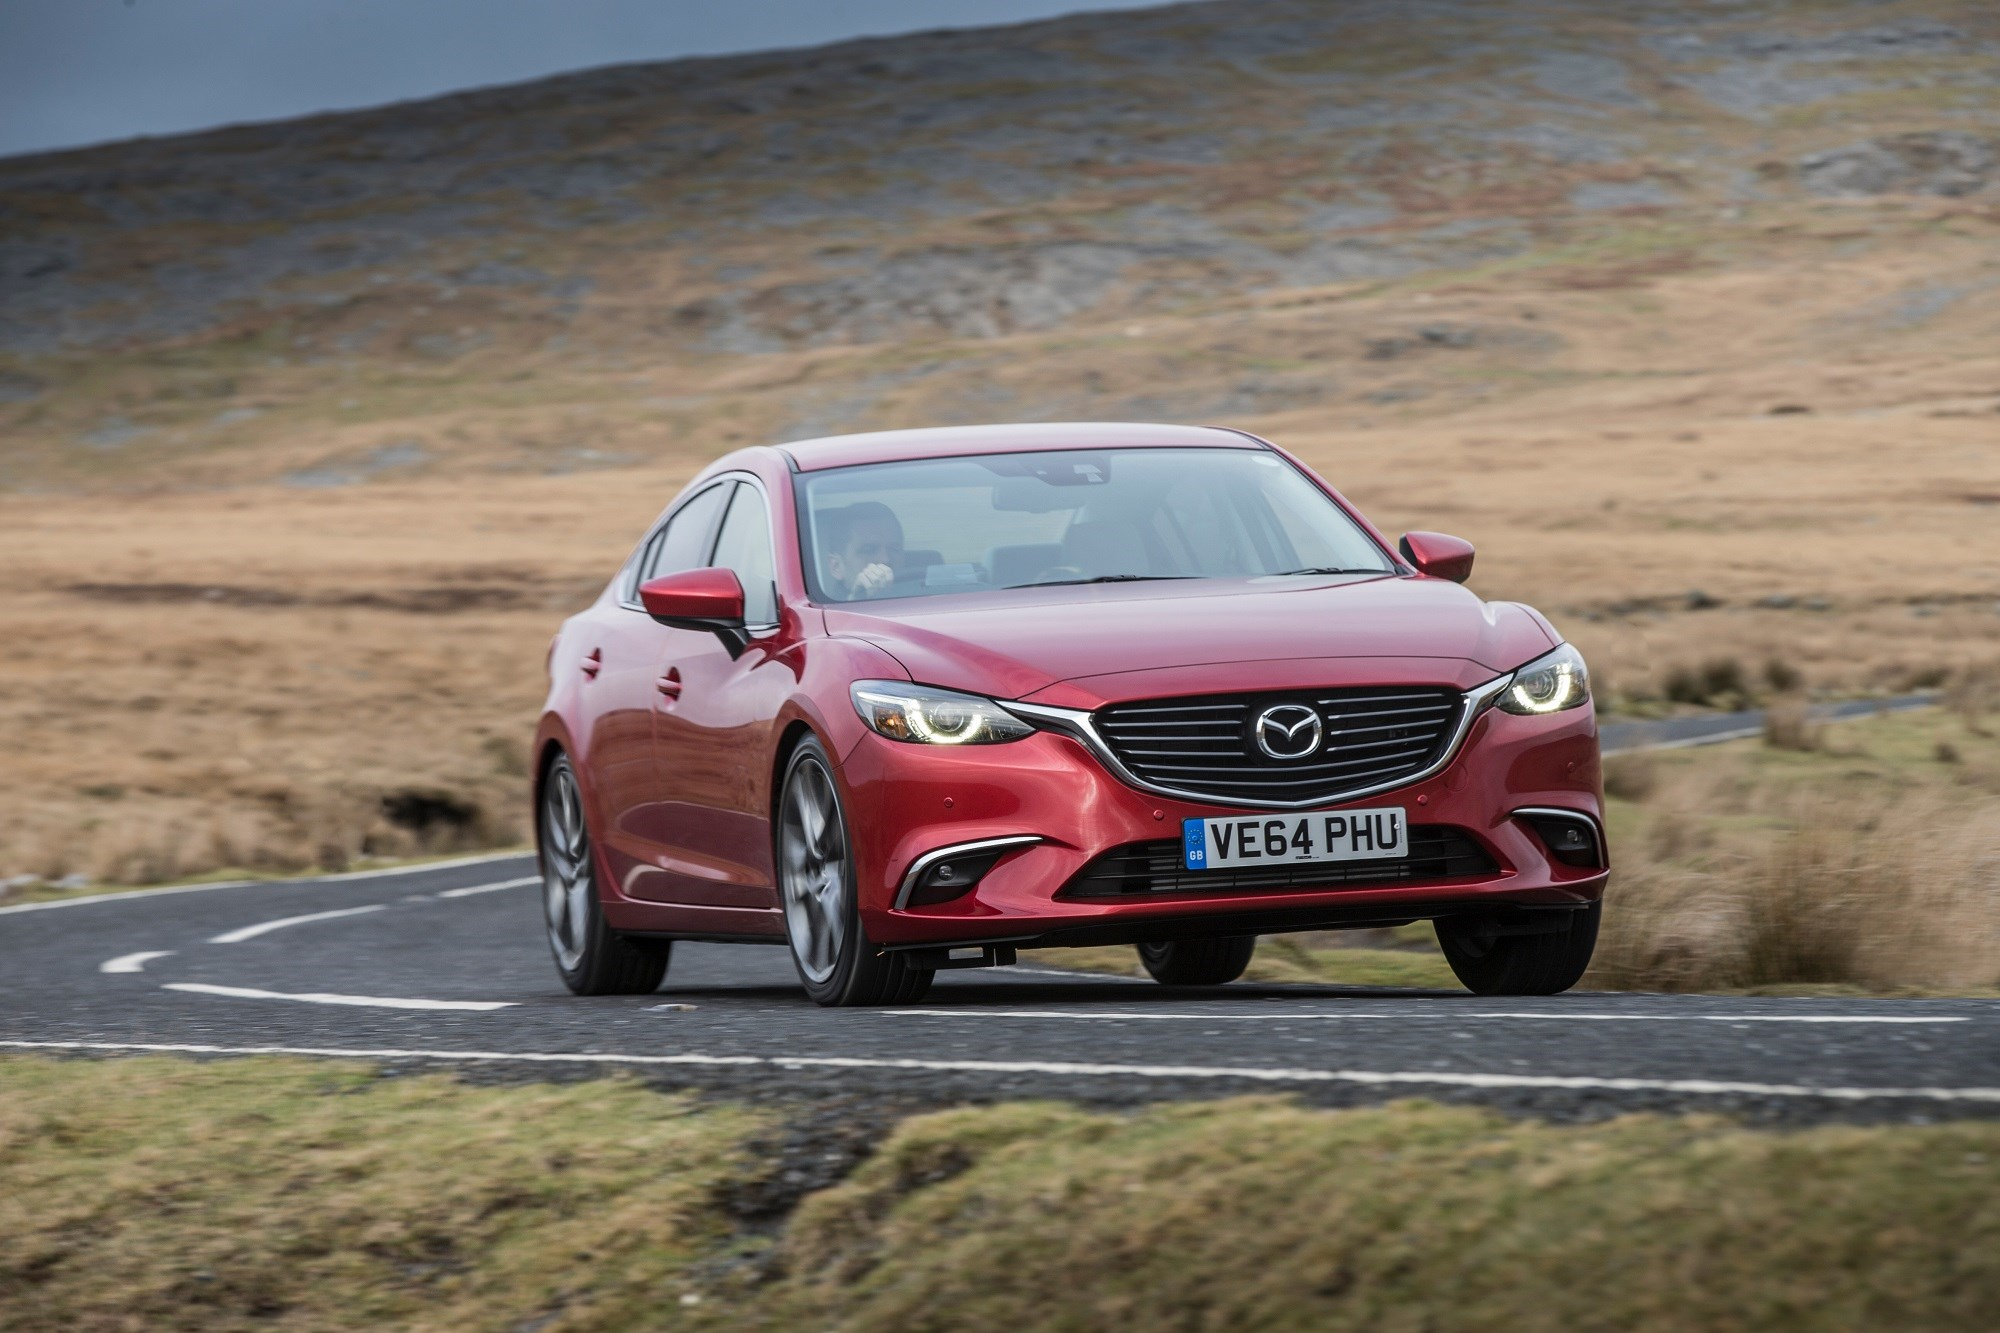 car specs review cars price prices mazda rear new